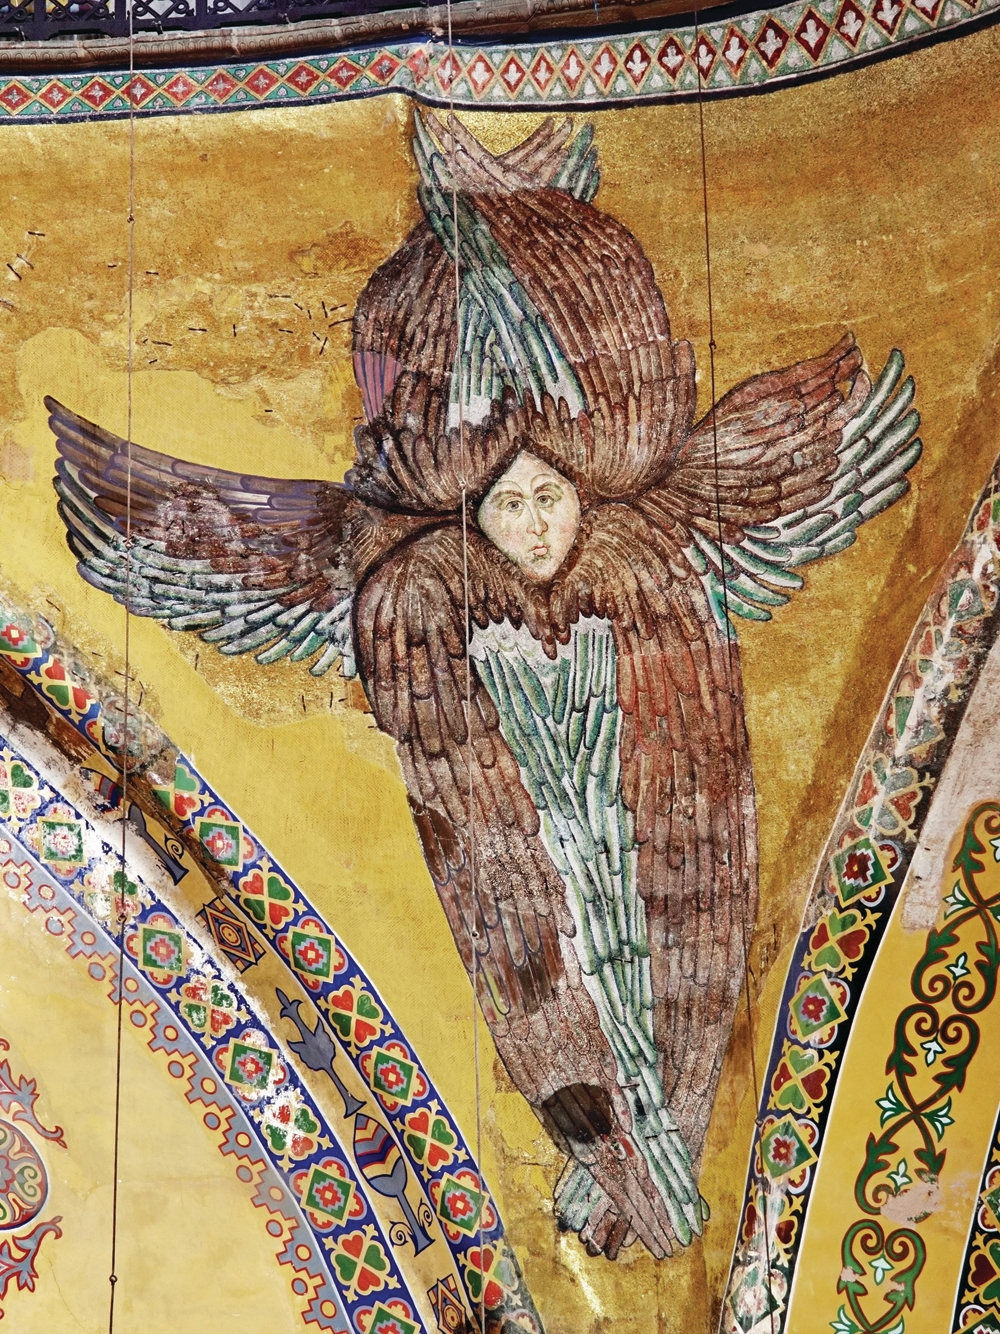 Hagia Sofia restoration reveals face of a seraph angel mosaic - Architectural Review